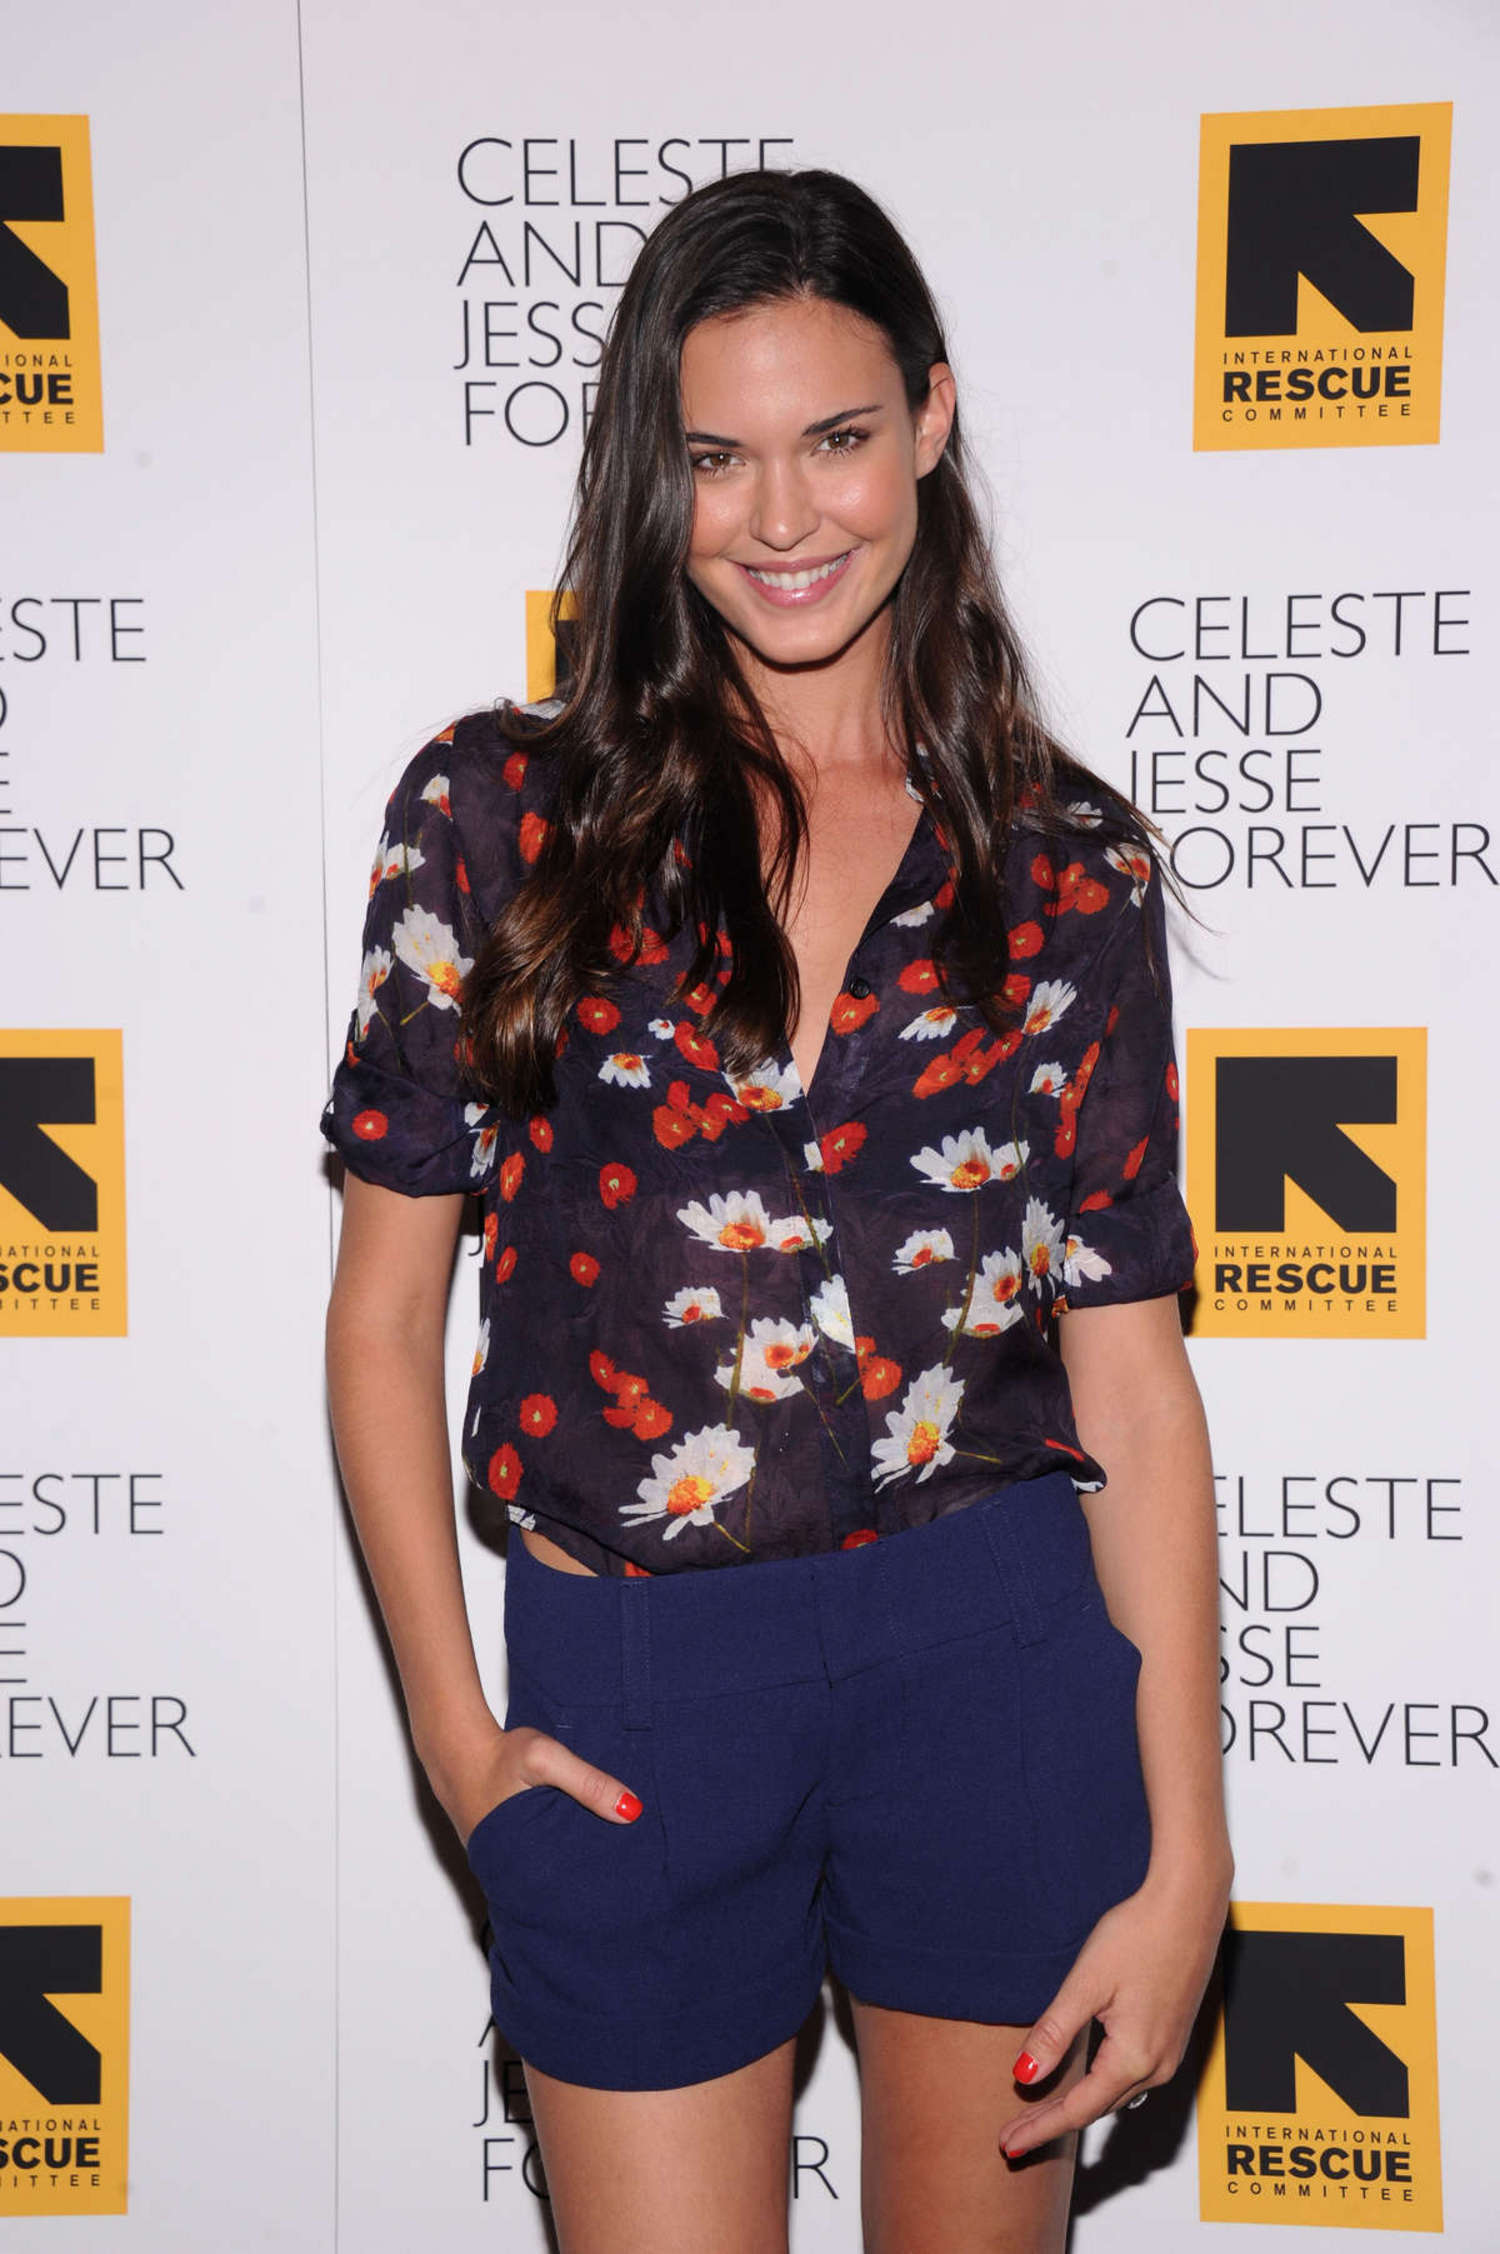 Odette Annable at Celeste And Jesse Forever Premiere in New York